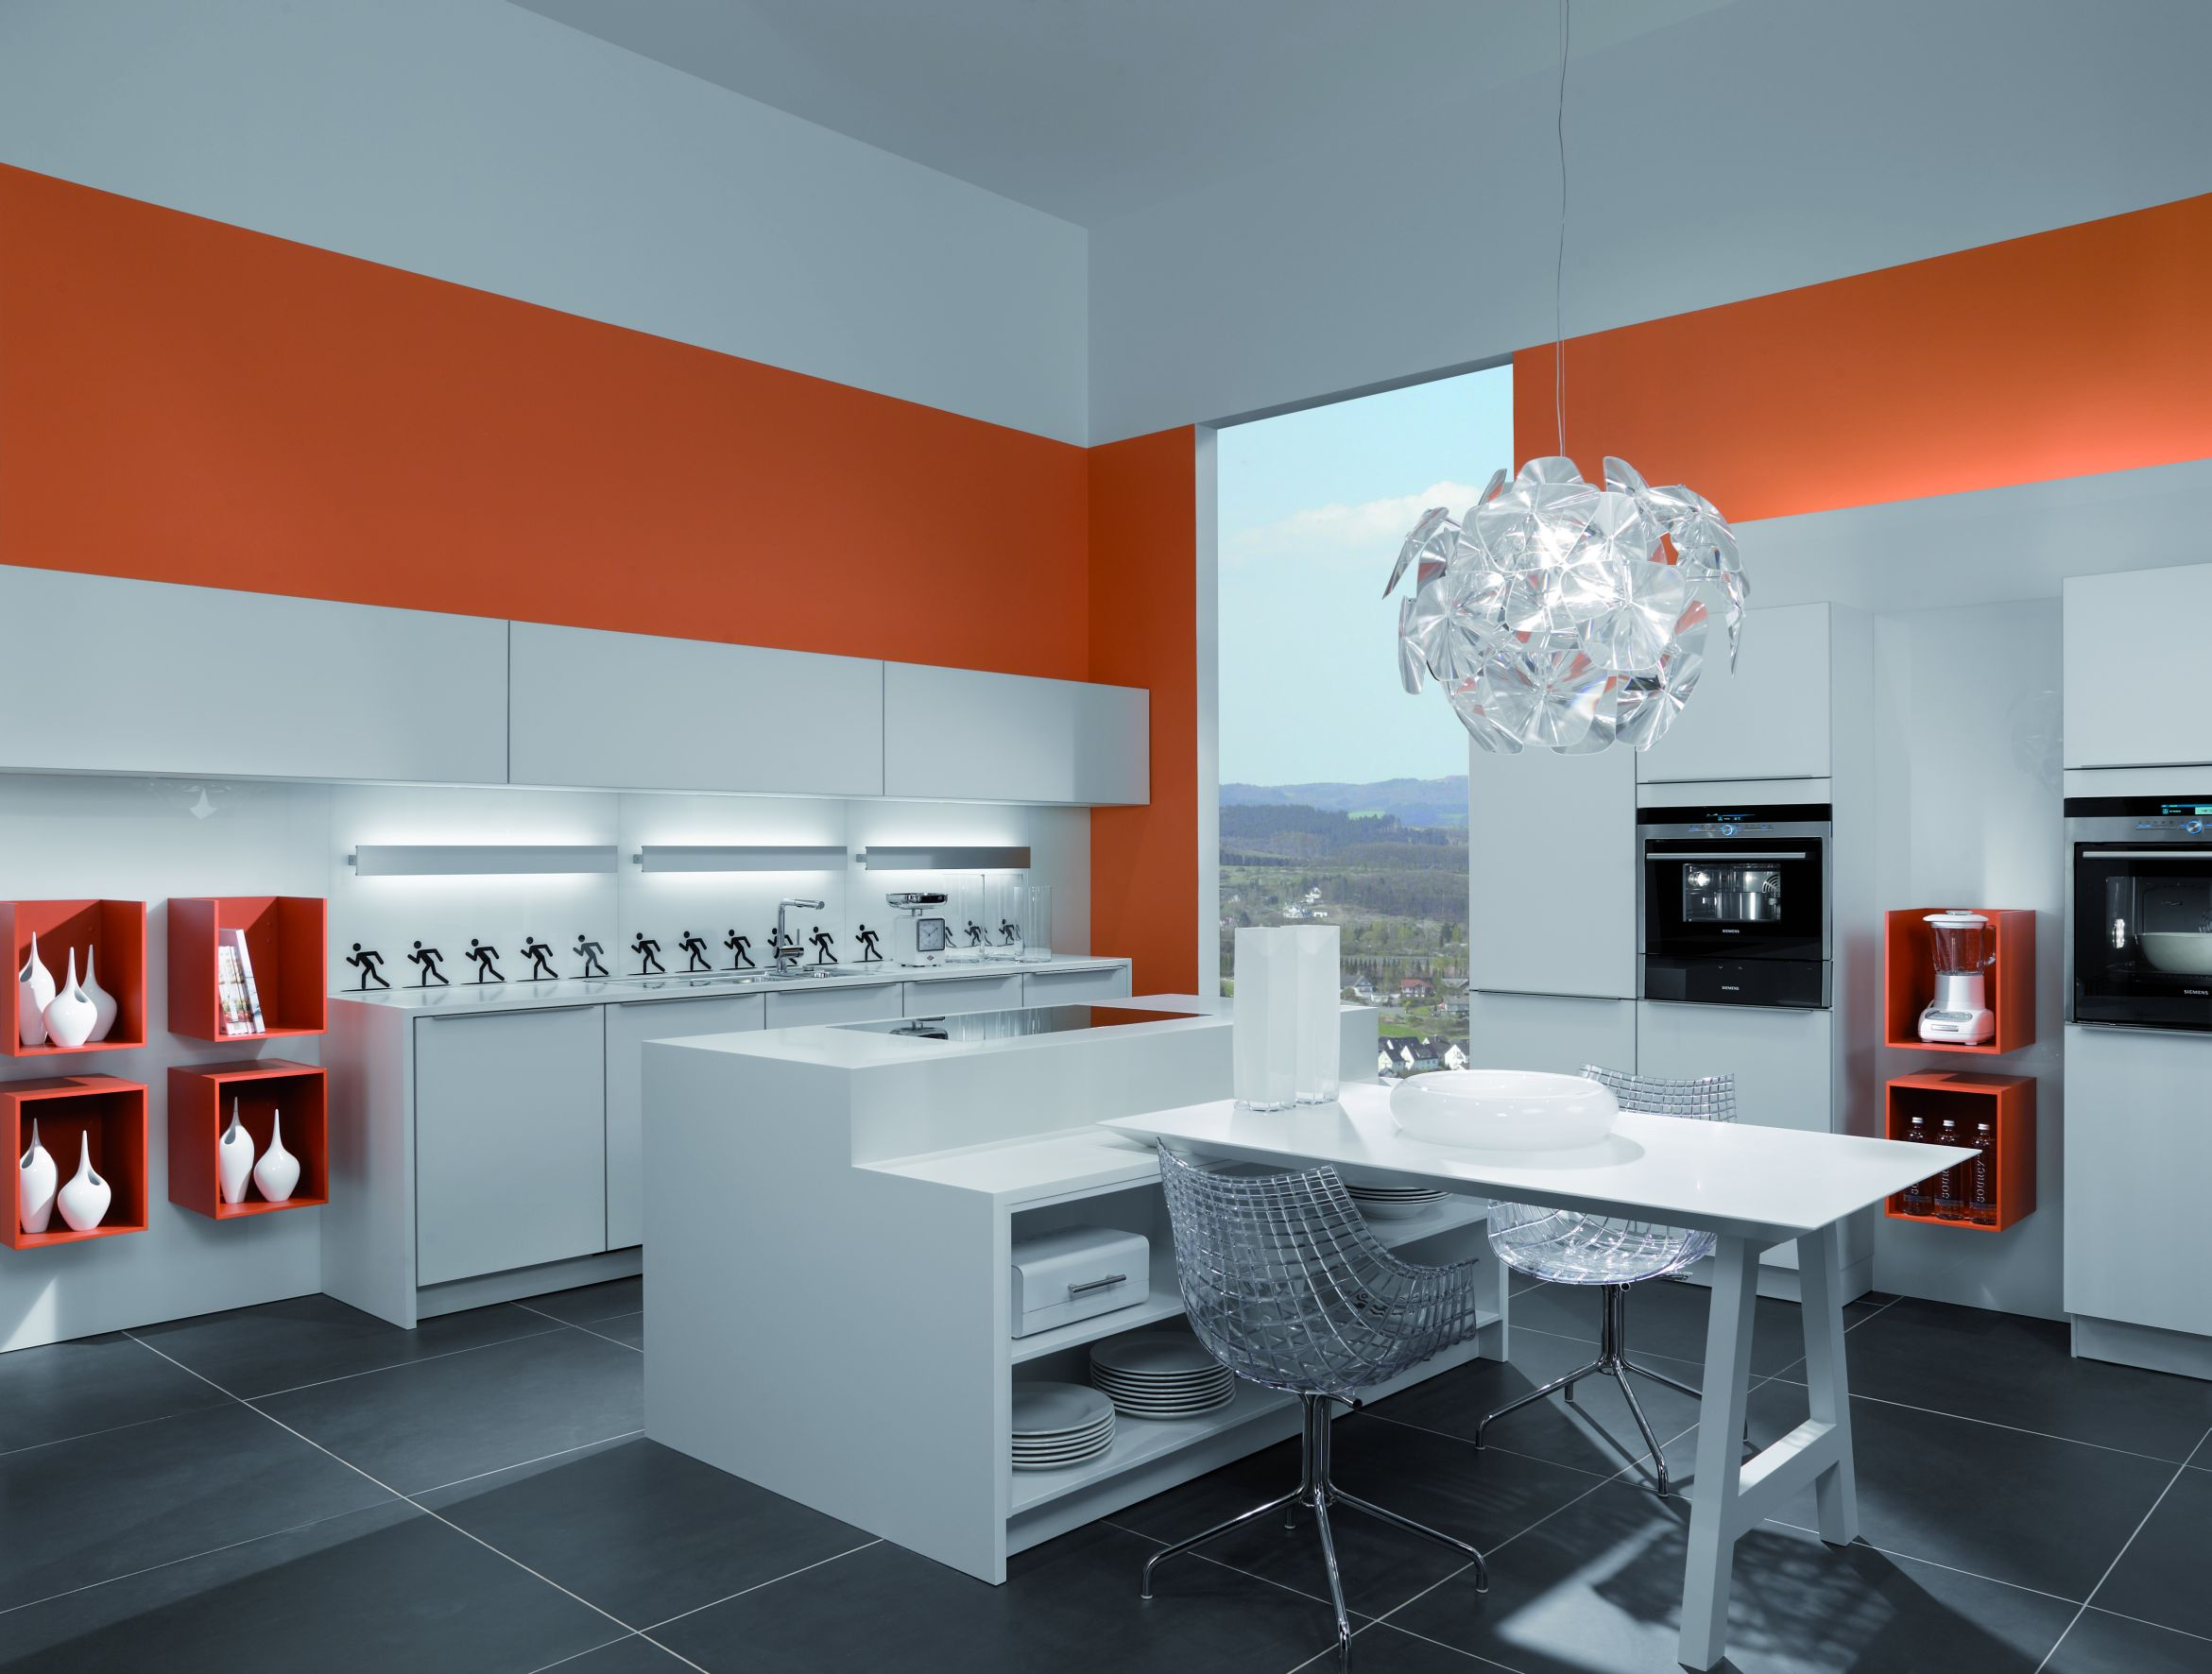 LivingKitchen names 6 trends in kitchen design for 2013